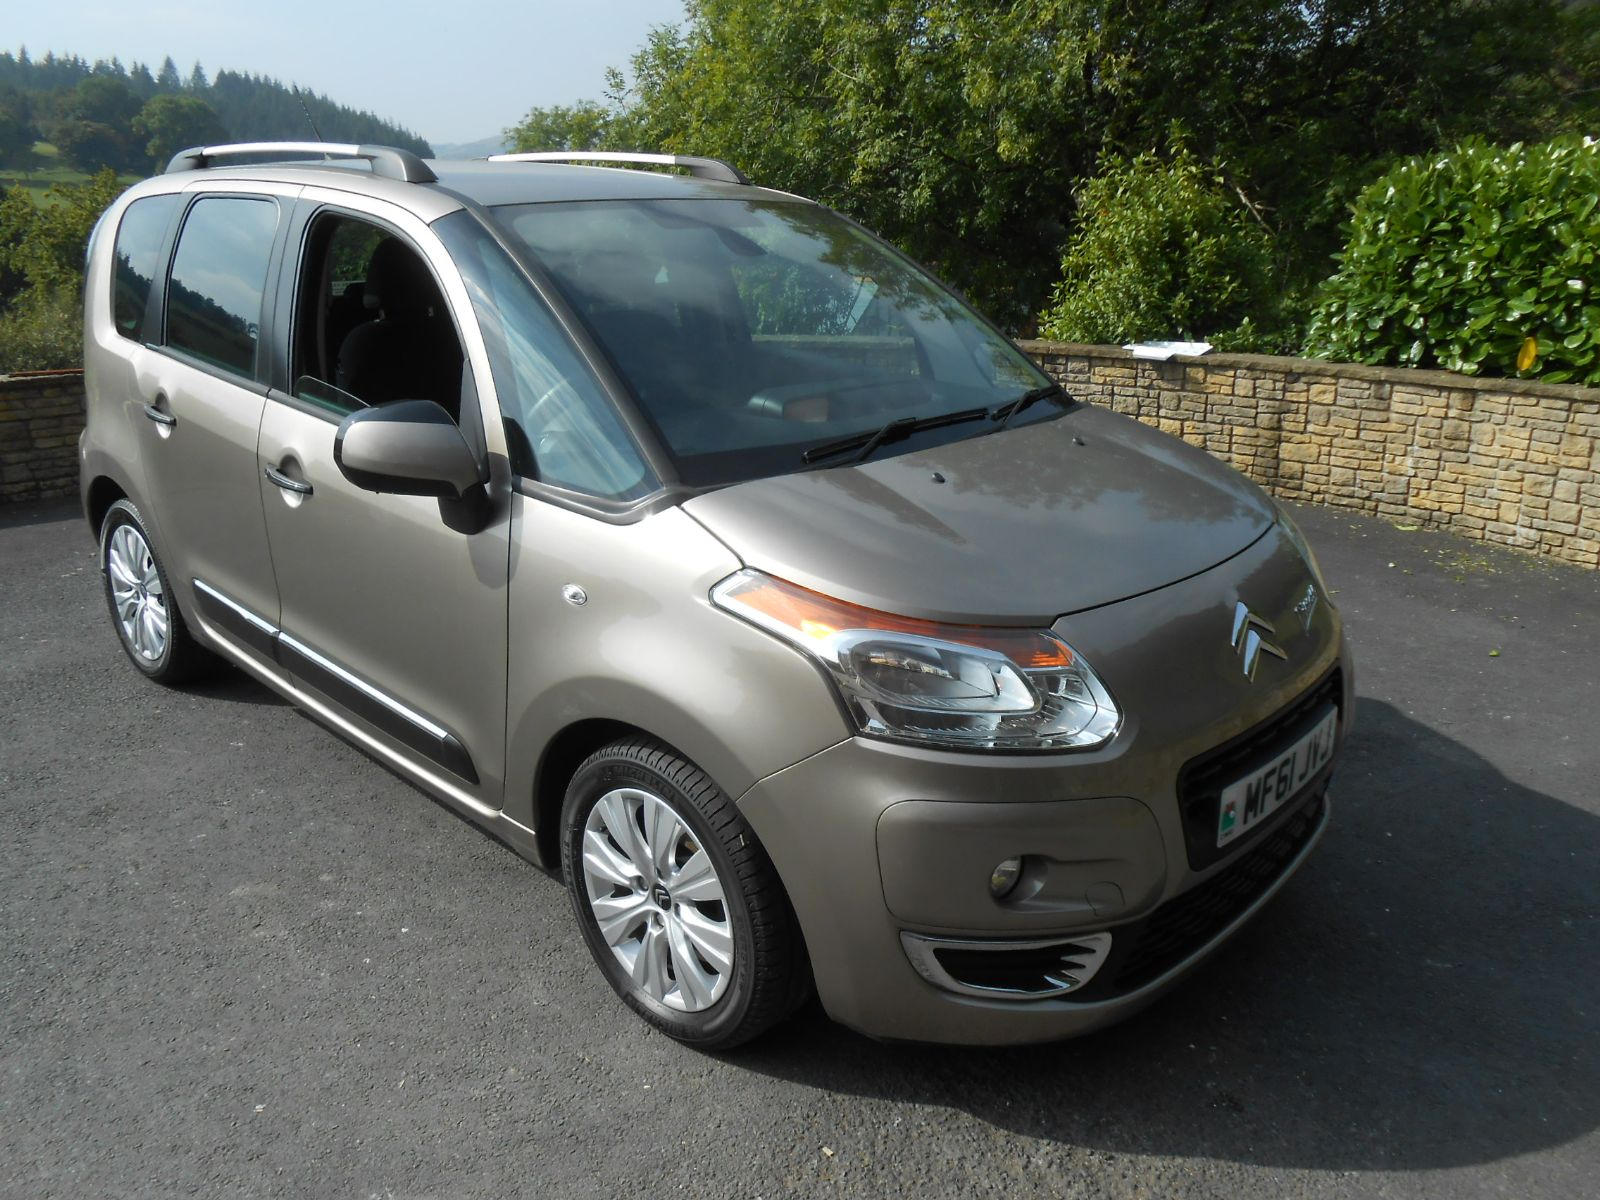 citroen c3 picasso 1 6 hdi exclusive 5 door car for sale llanidloes powys mid wales kevin jones. Black Bedroom Furniture Sets. Home Design Ideas